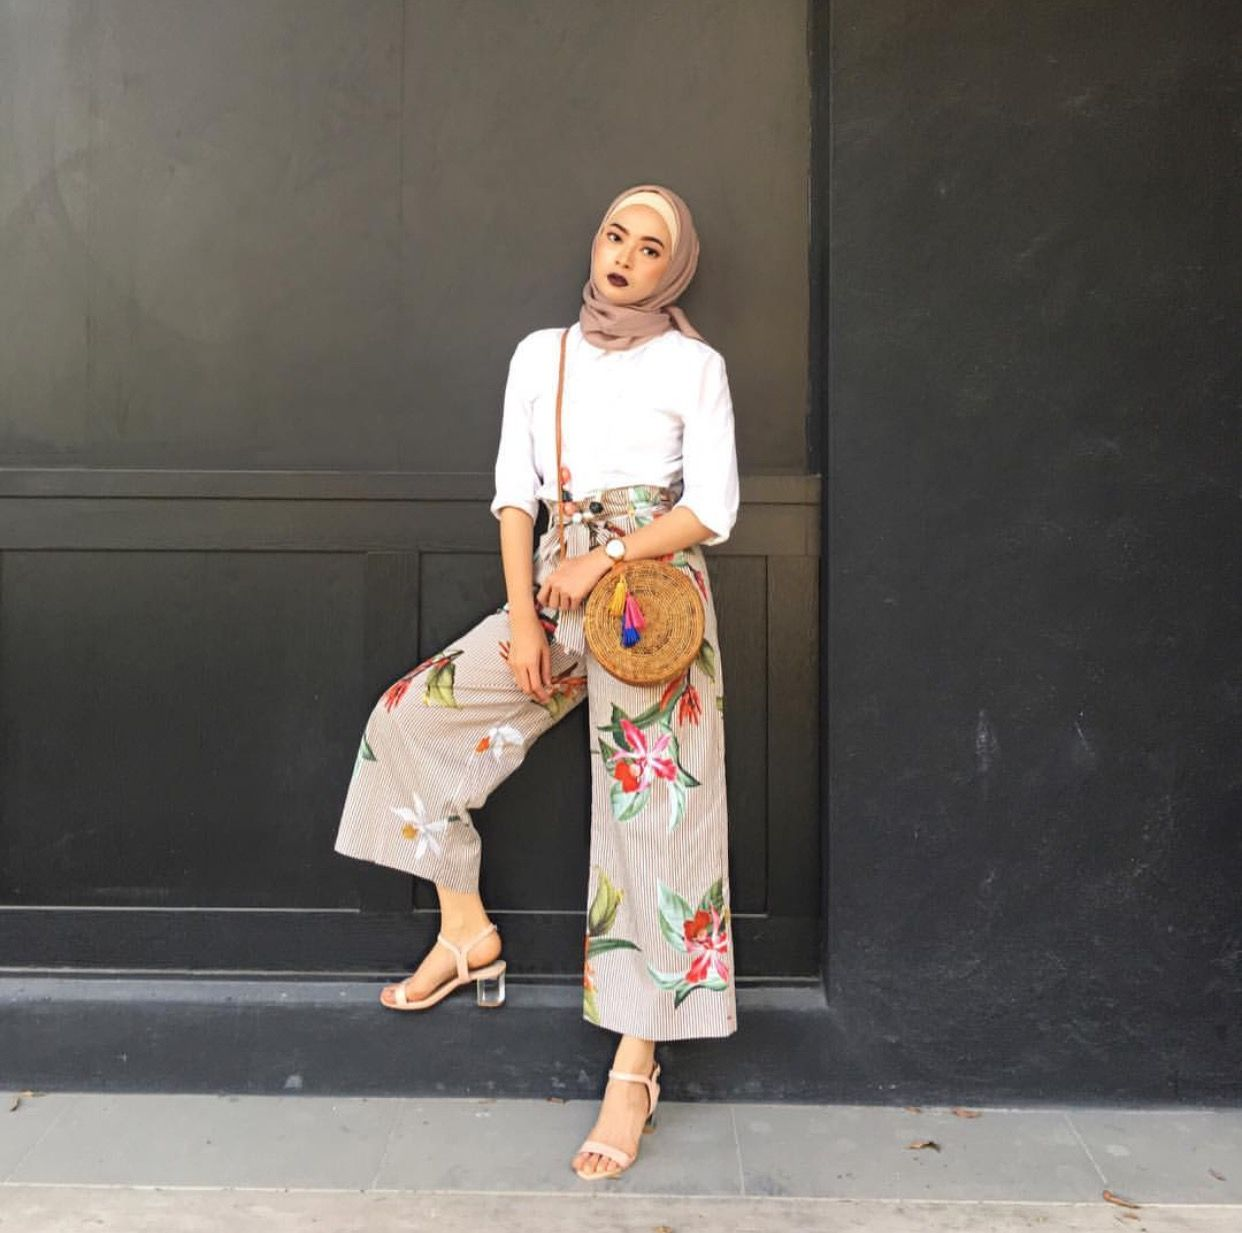 Pin By Nourma Prisilia On Clothes I Love In 2018 Pinterest Hijab Kebaya Lestari Putih 1185r Adarkurdish Street Fashion Muslim Modest Outfits